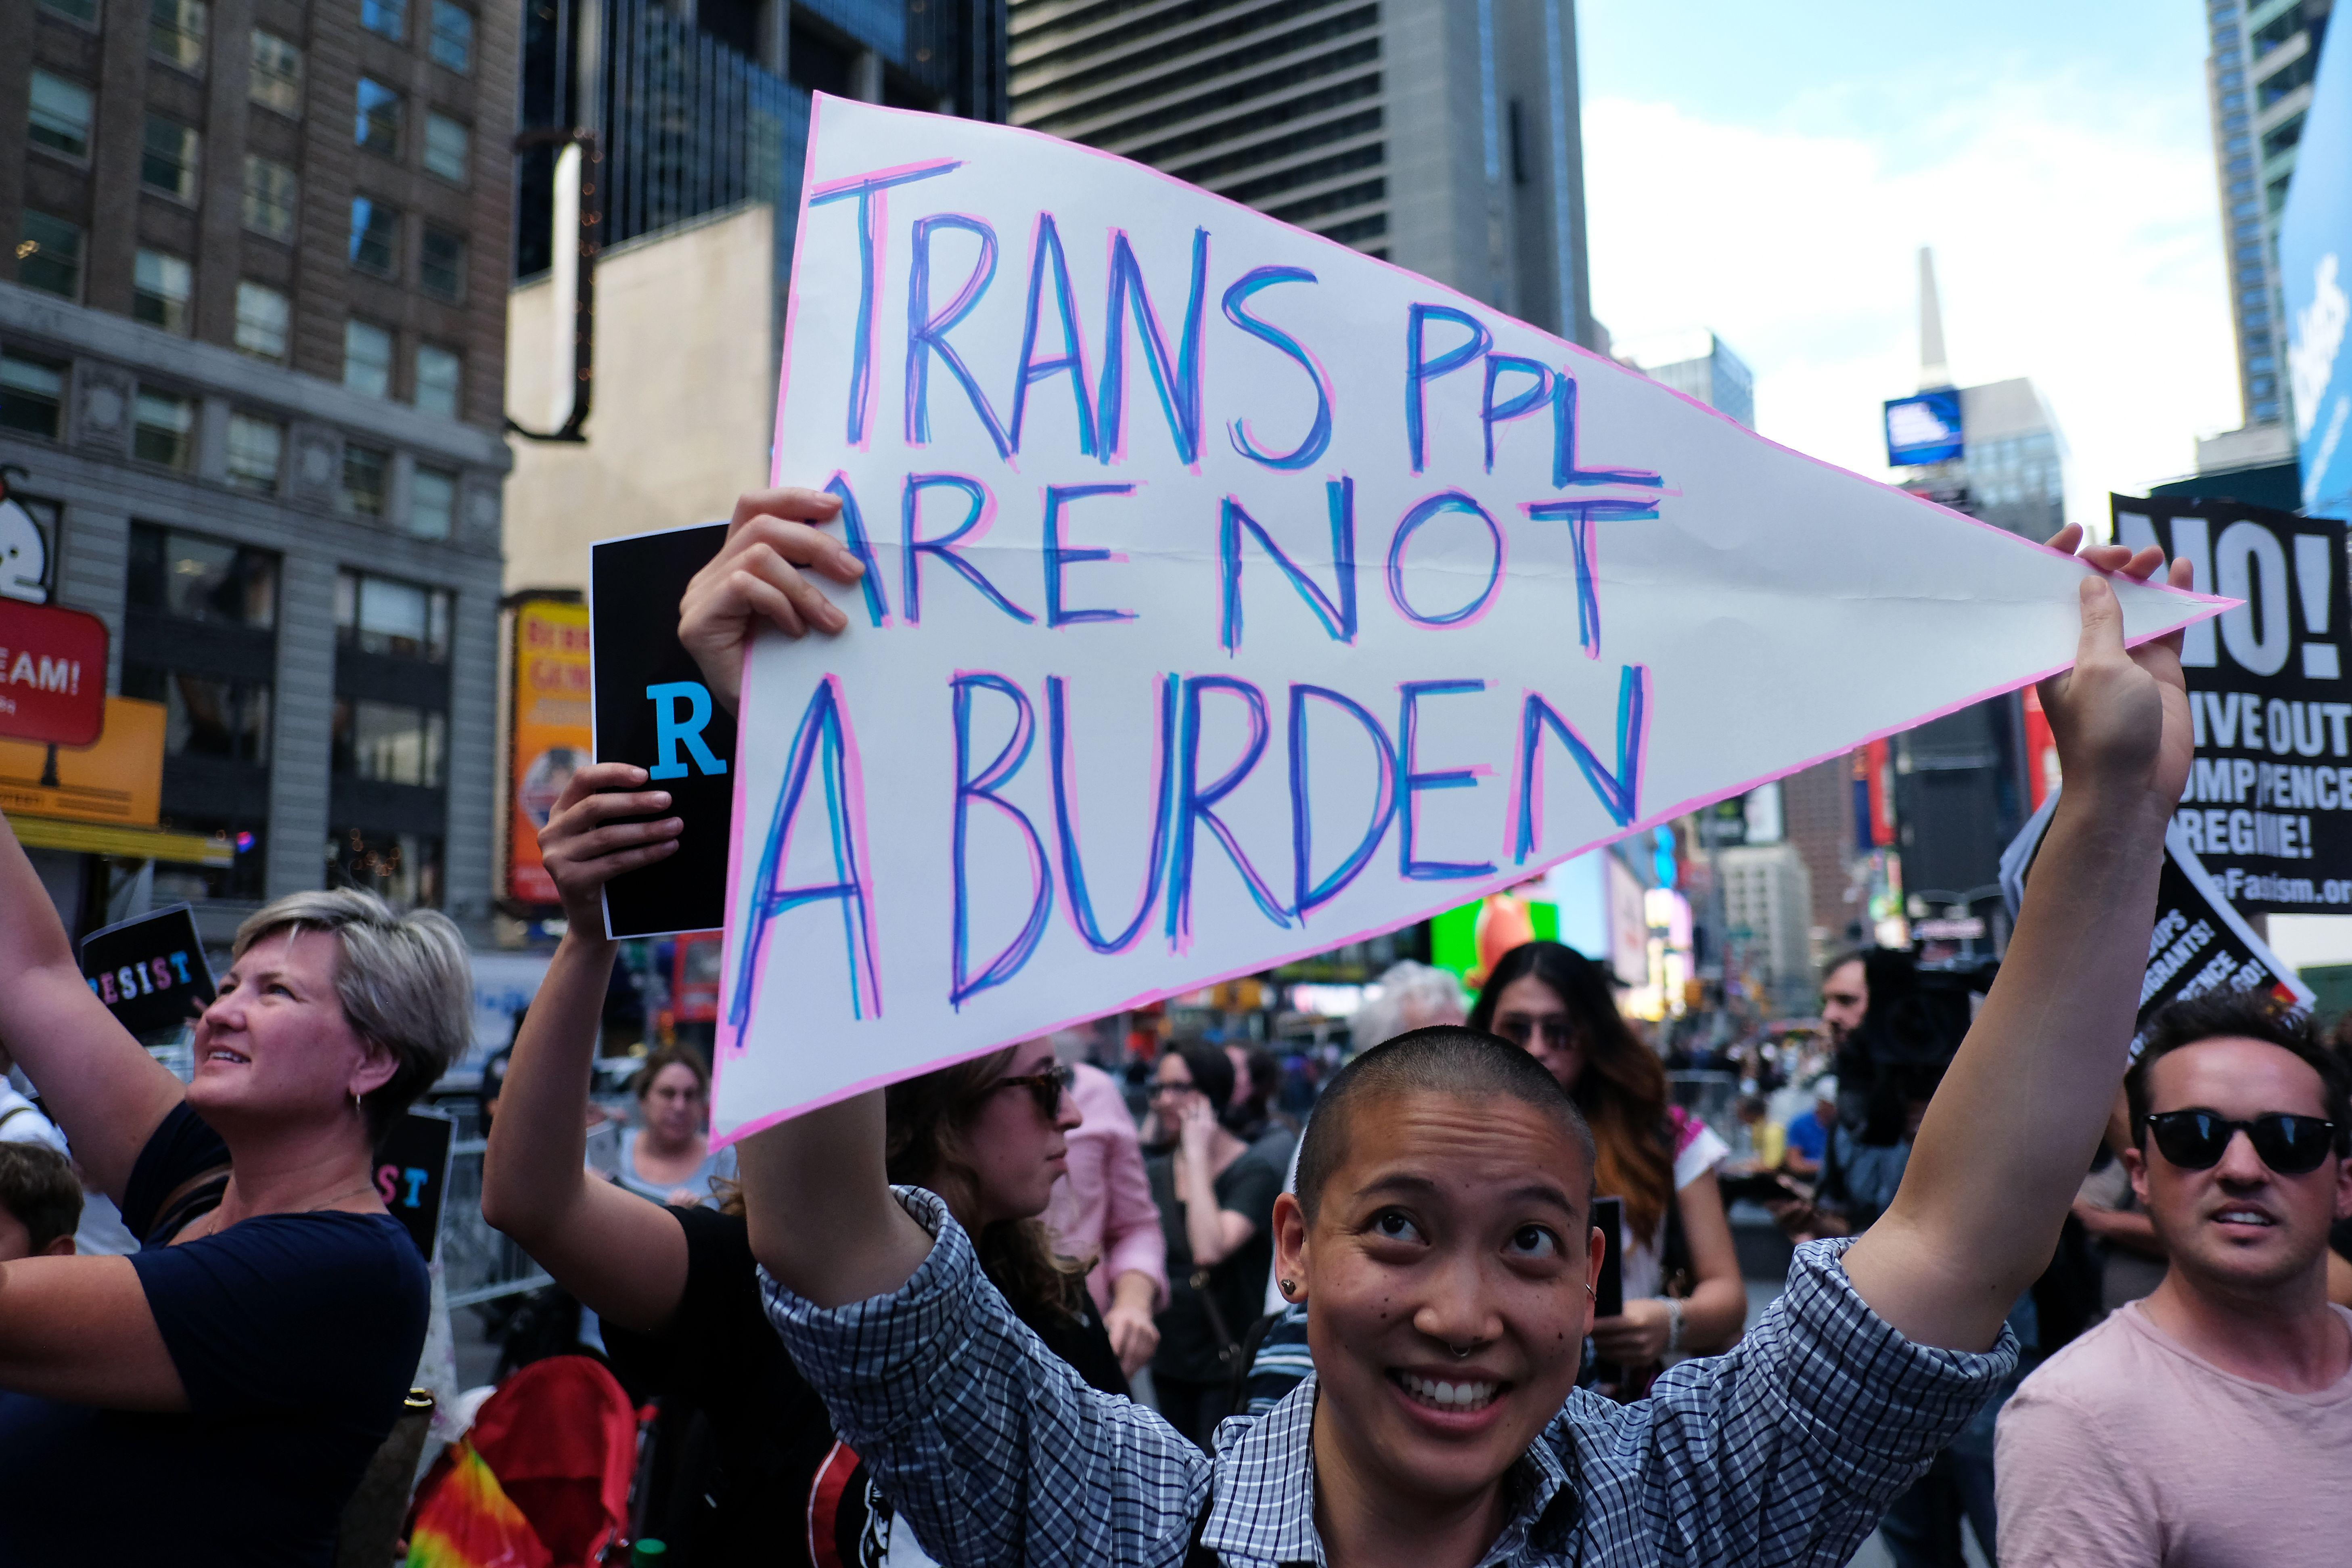 Protesters demonstrate against President Donald Trump's plan to ban open transgender military service.